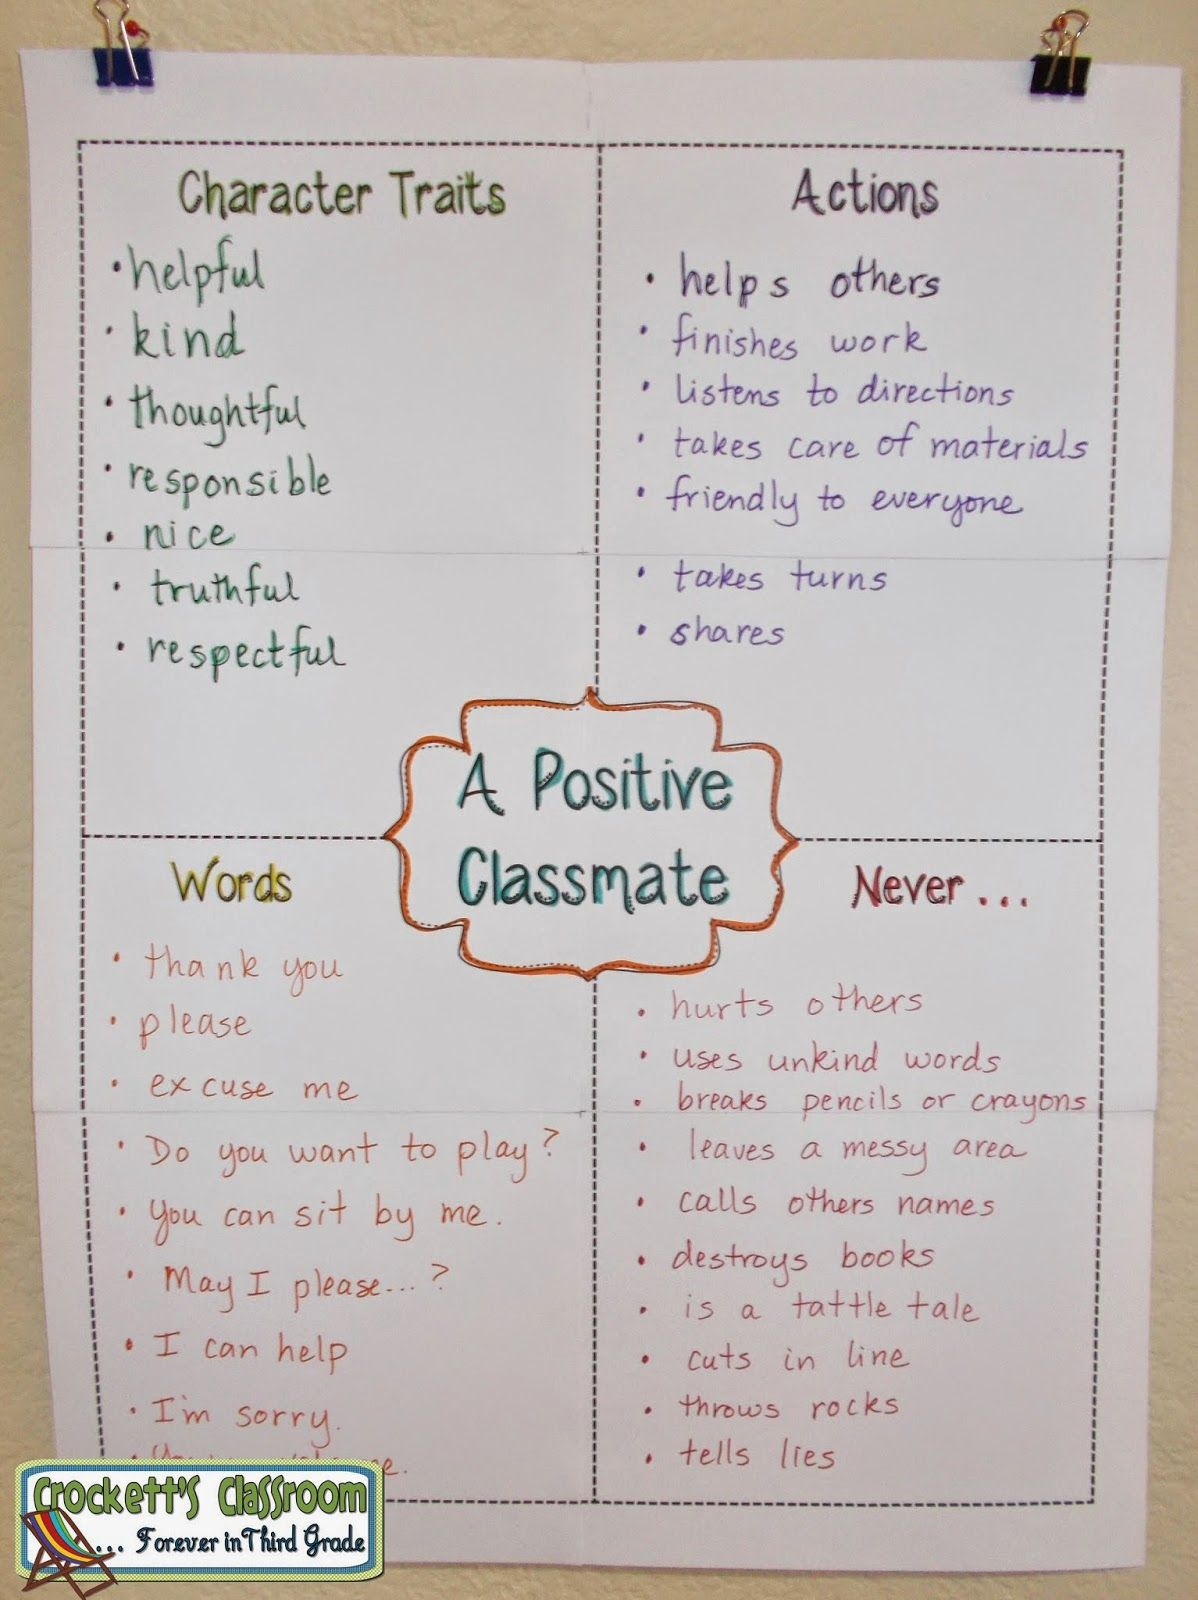 Maintaining a Positive Classroom Environment